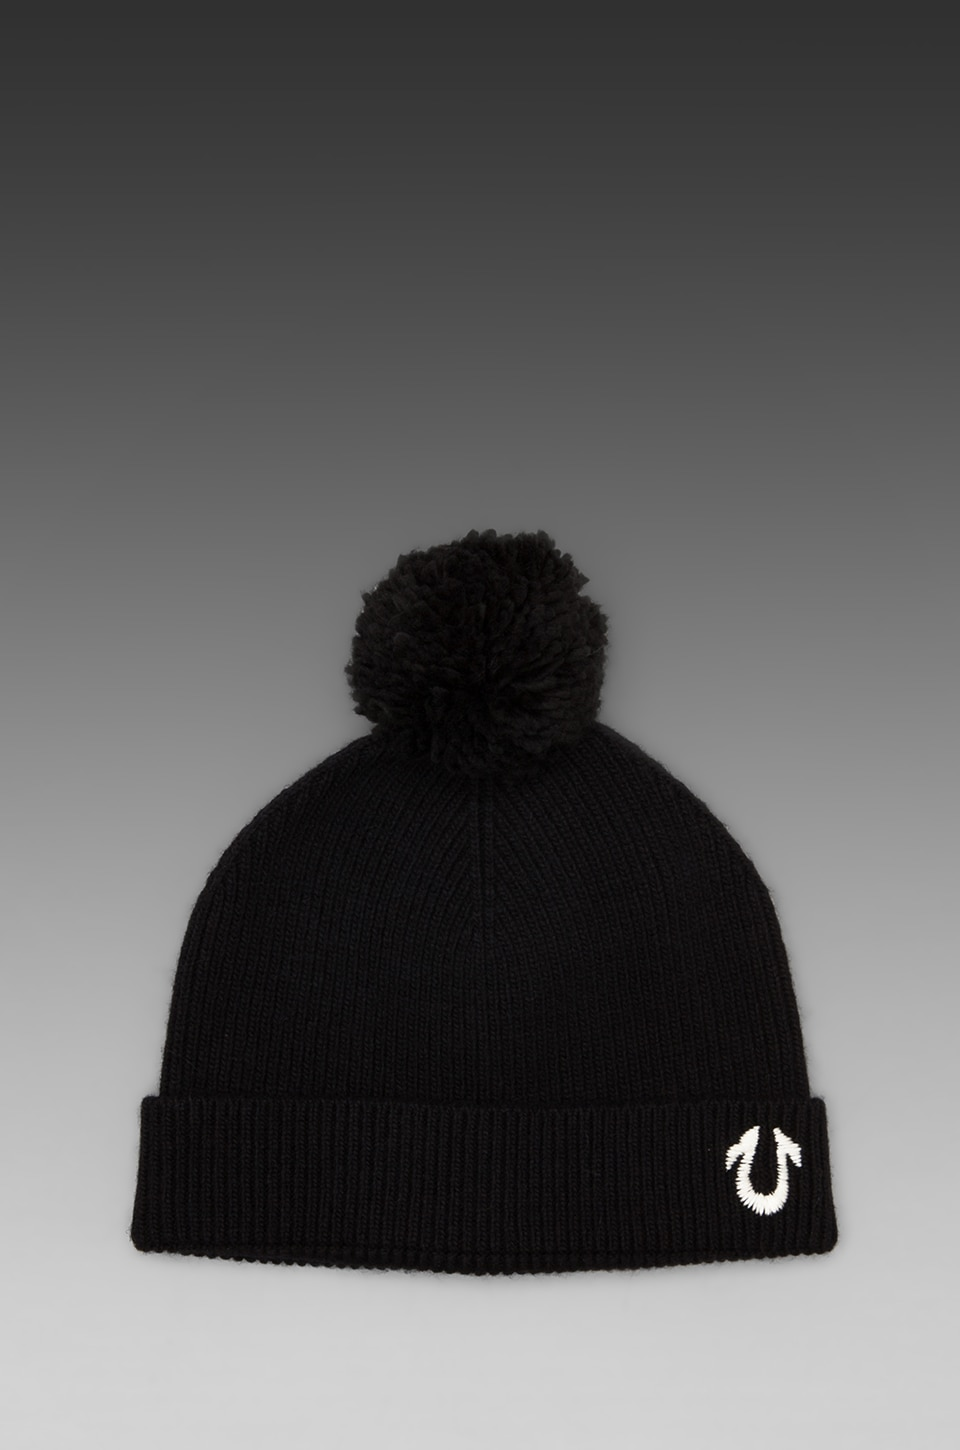 True Religion Knit Watchcap with Pom in Black